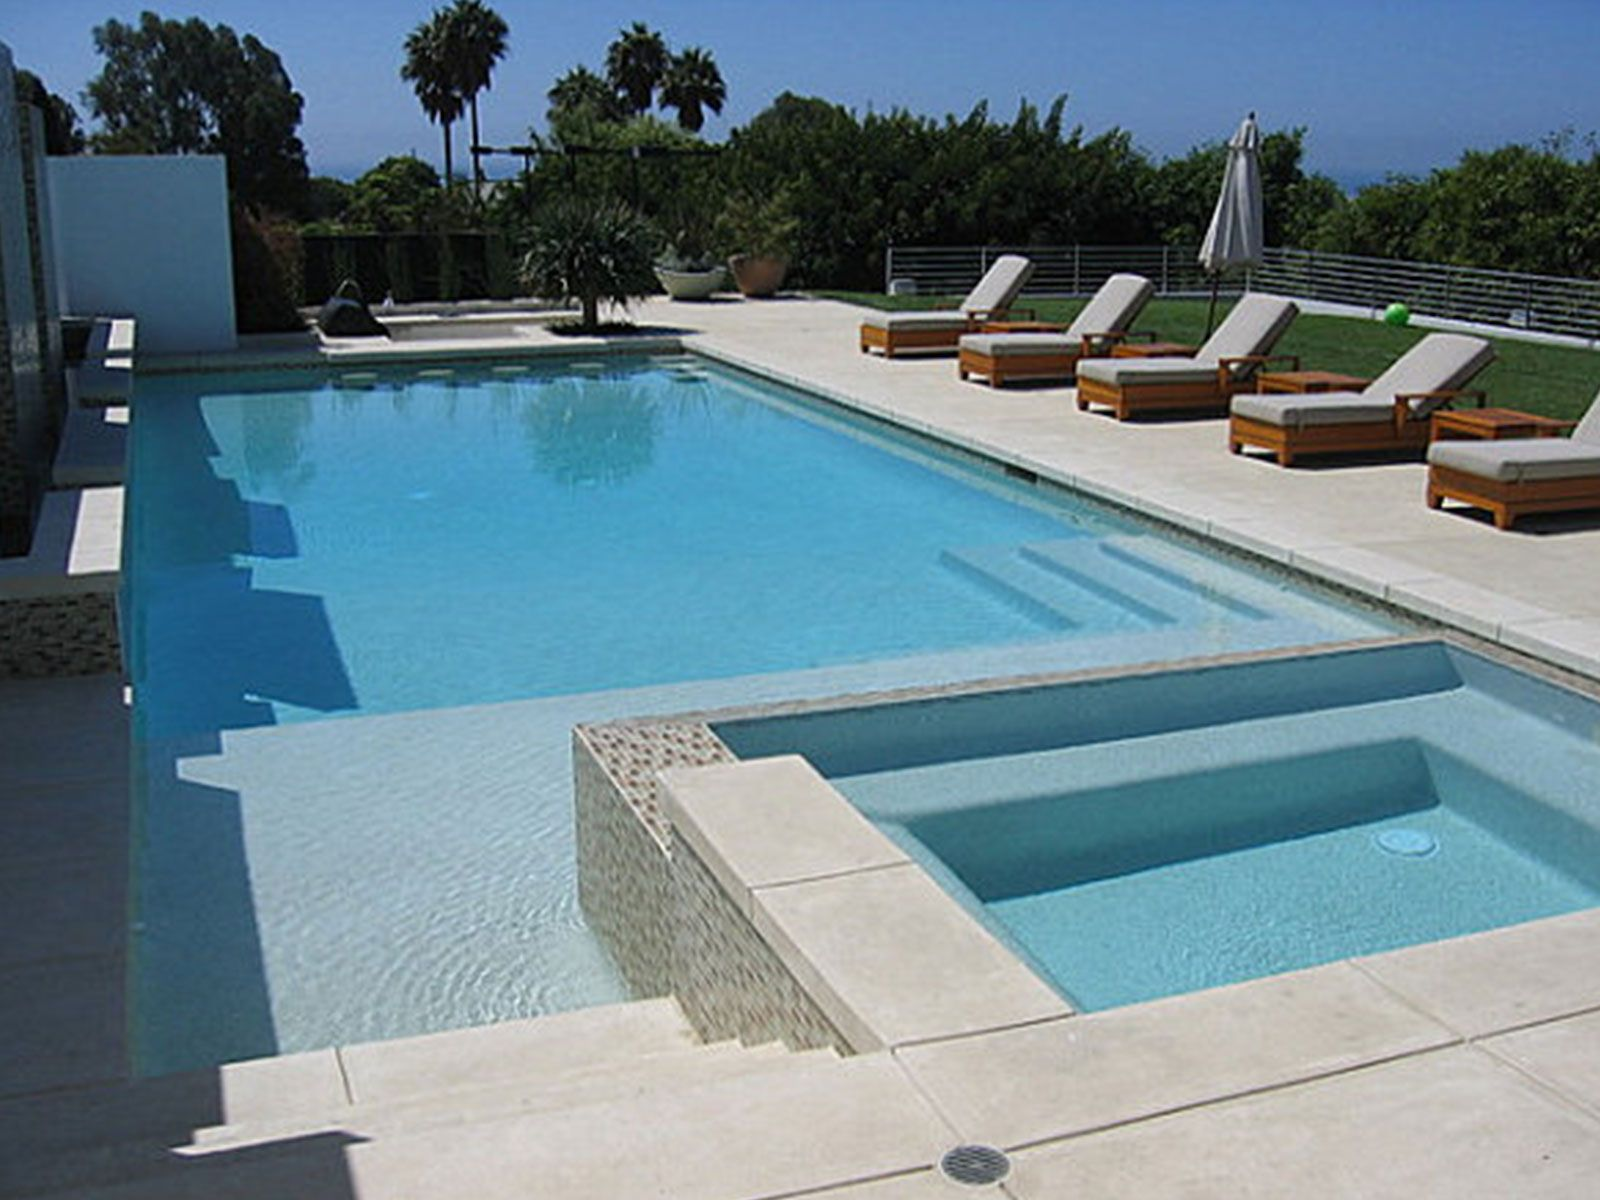 Simple swimming pool design image modern creative swimming for Swimming pool design xls